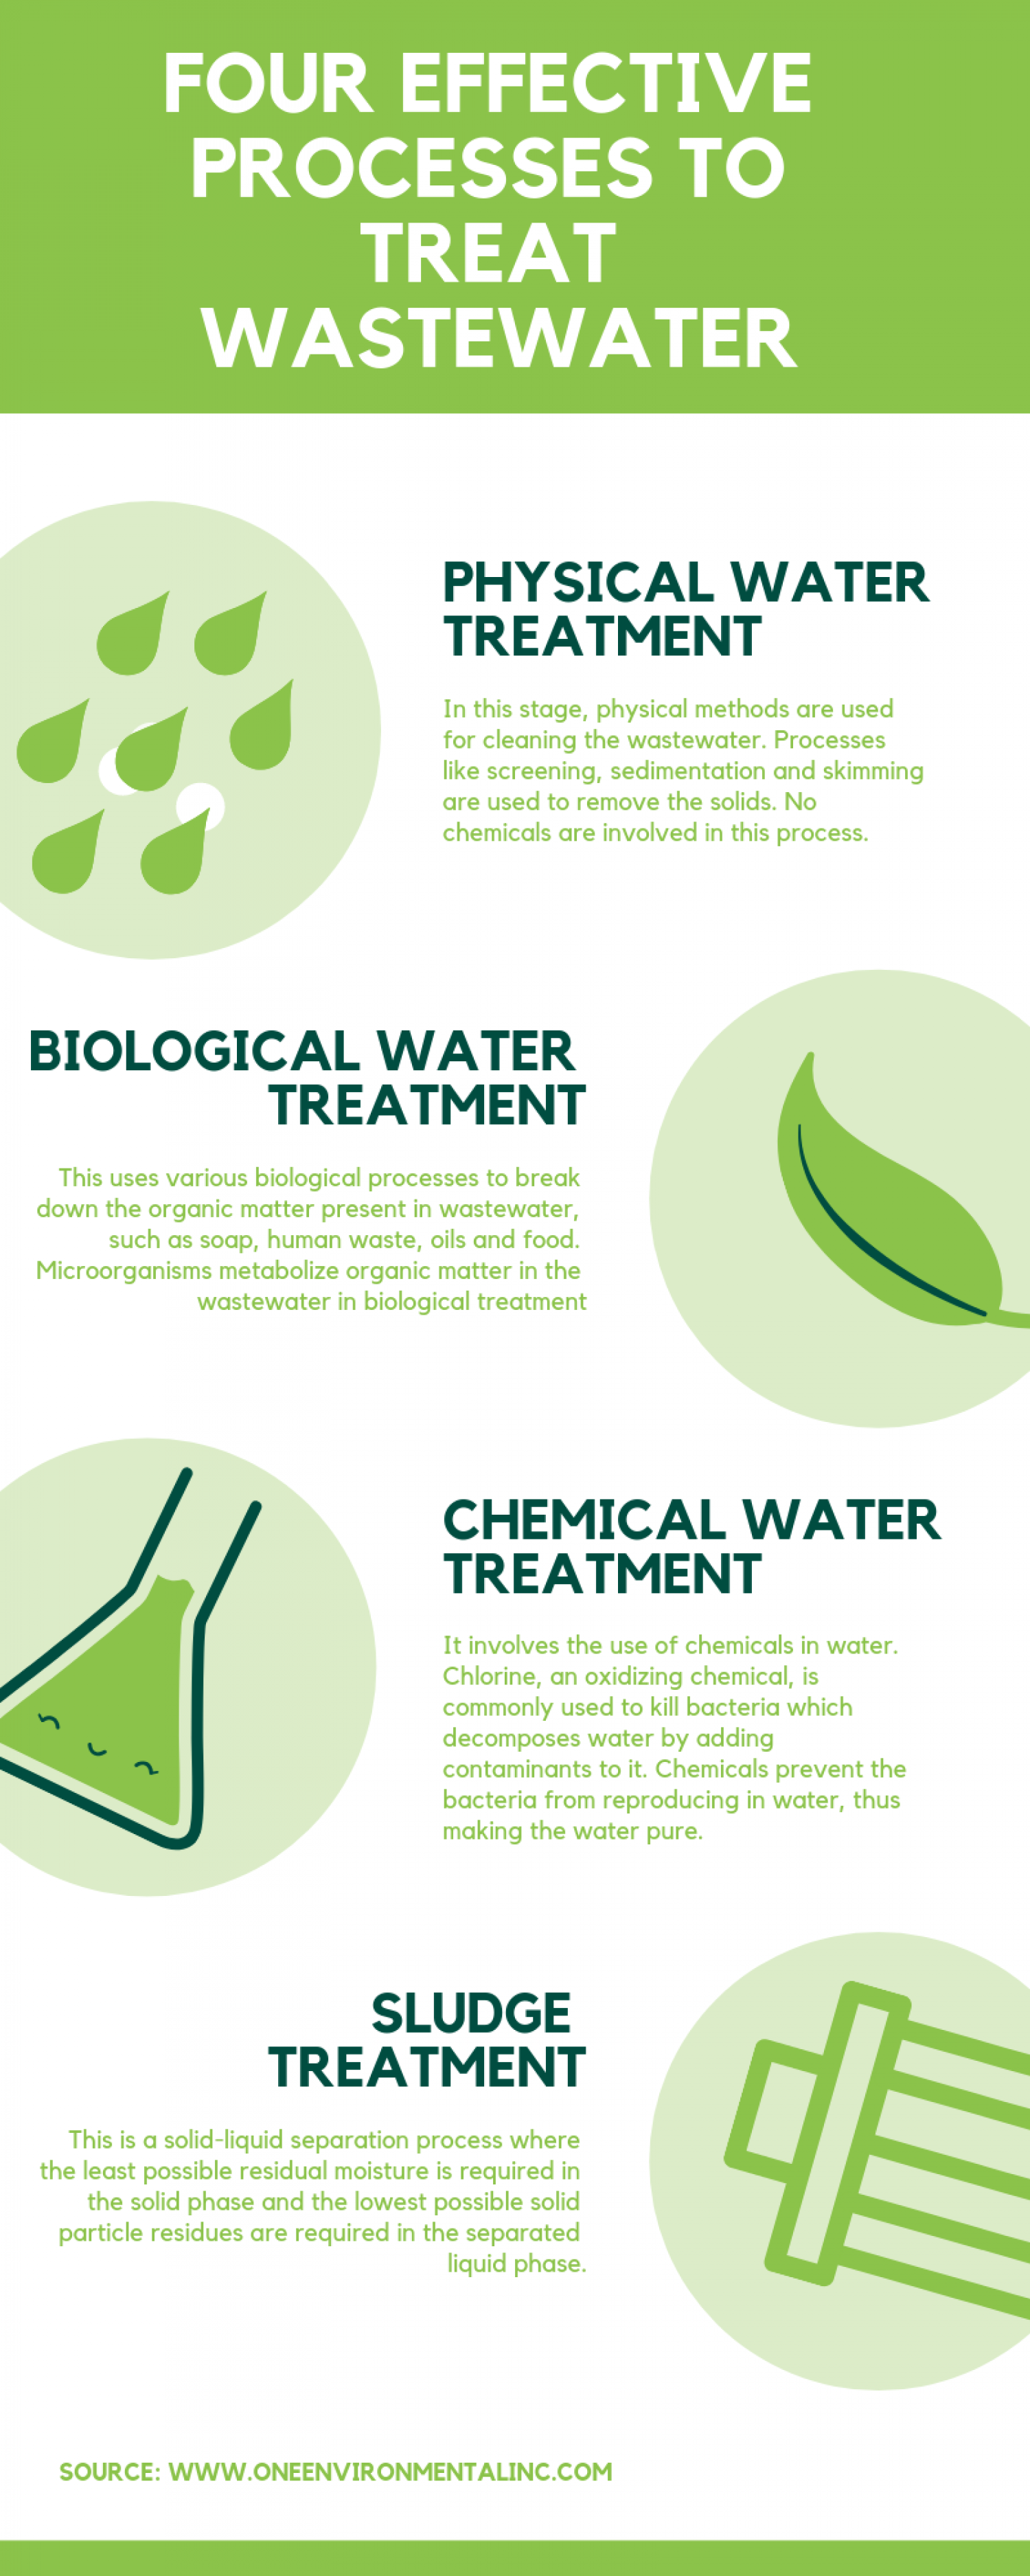 Four Effective Processes to Treat Wastewater Infographic